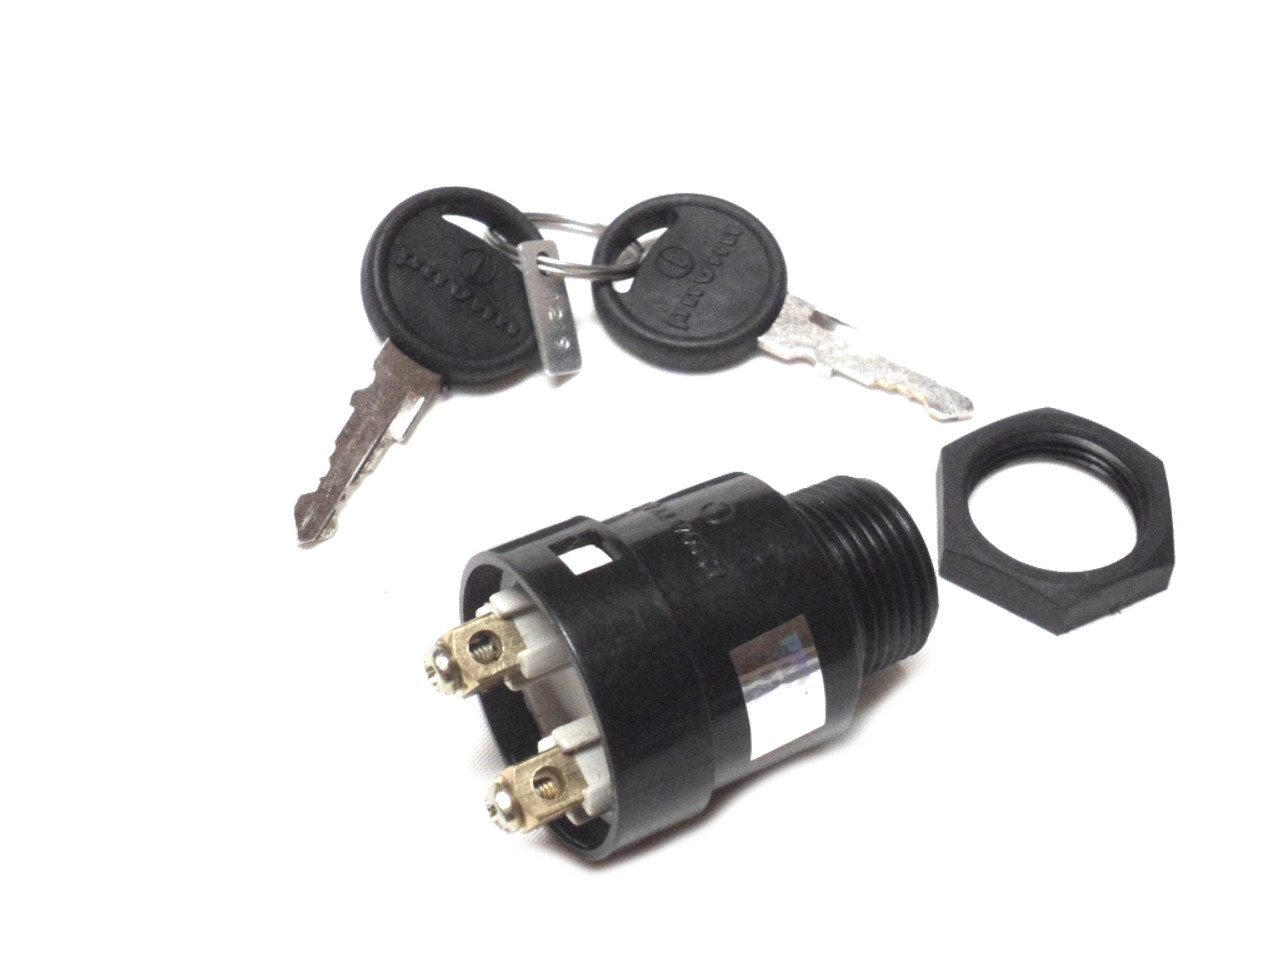 Original Kinetic Keyed Ignition Switch, 2 Prong - keys included